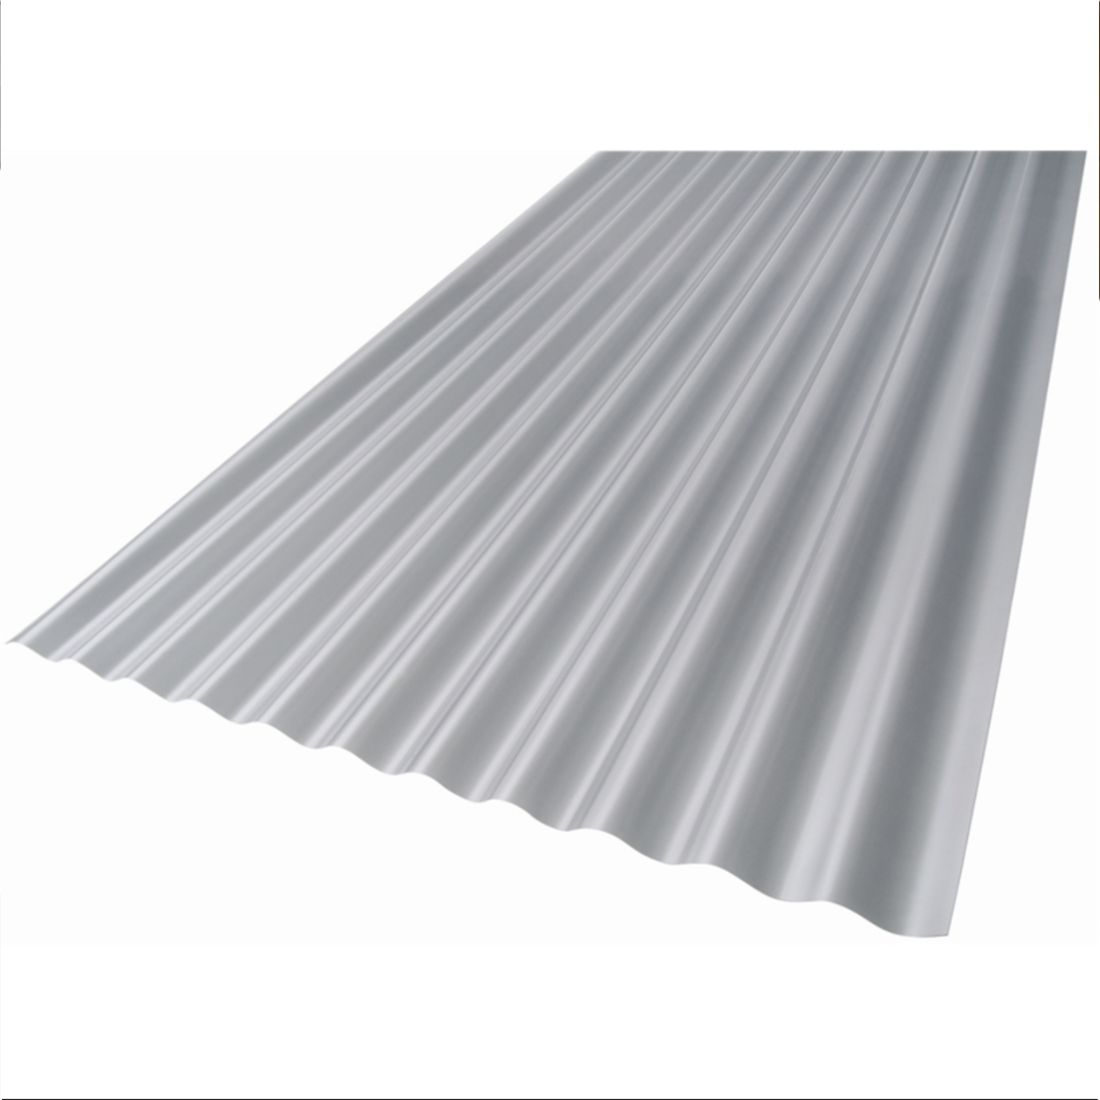 CoolTech Corrugated Grey 4800 x 860mm